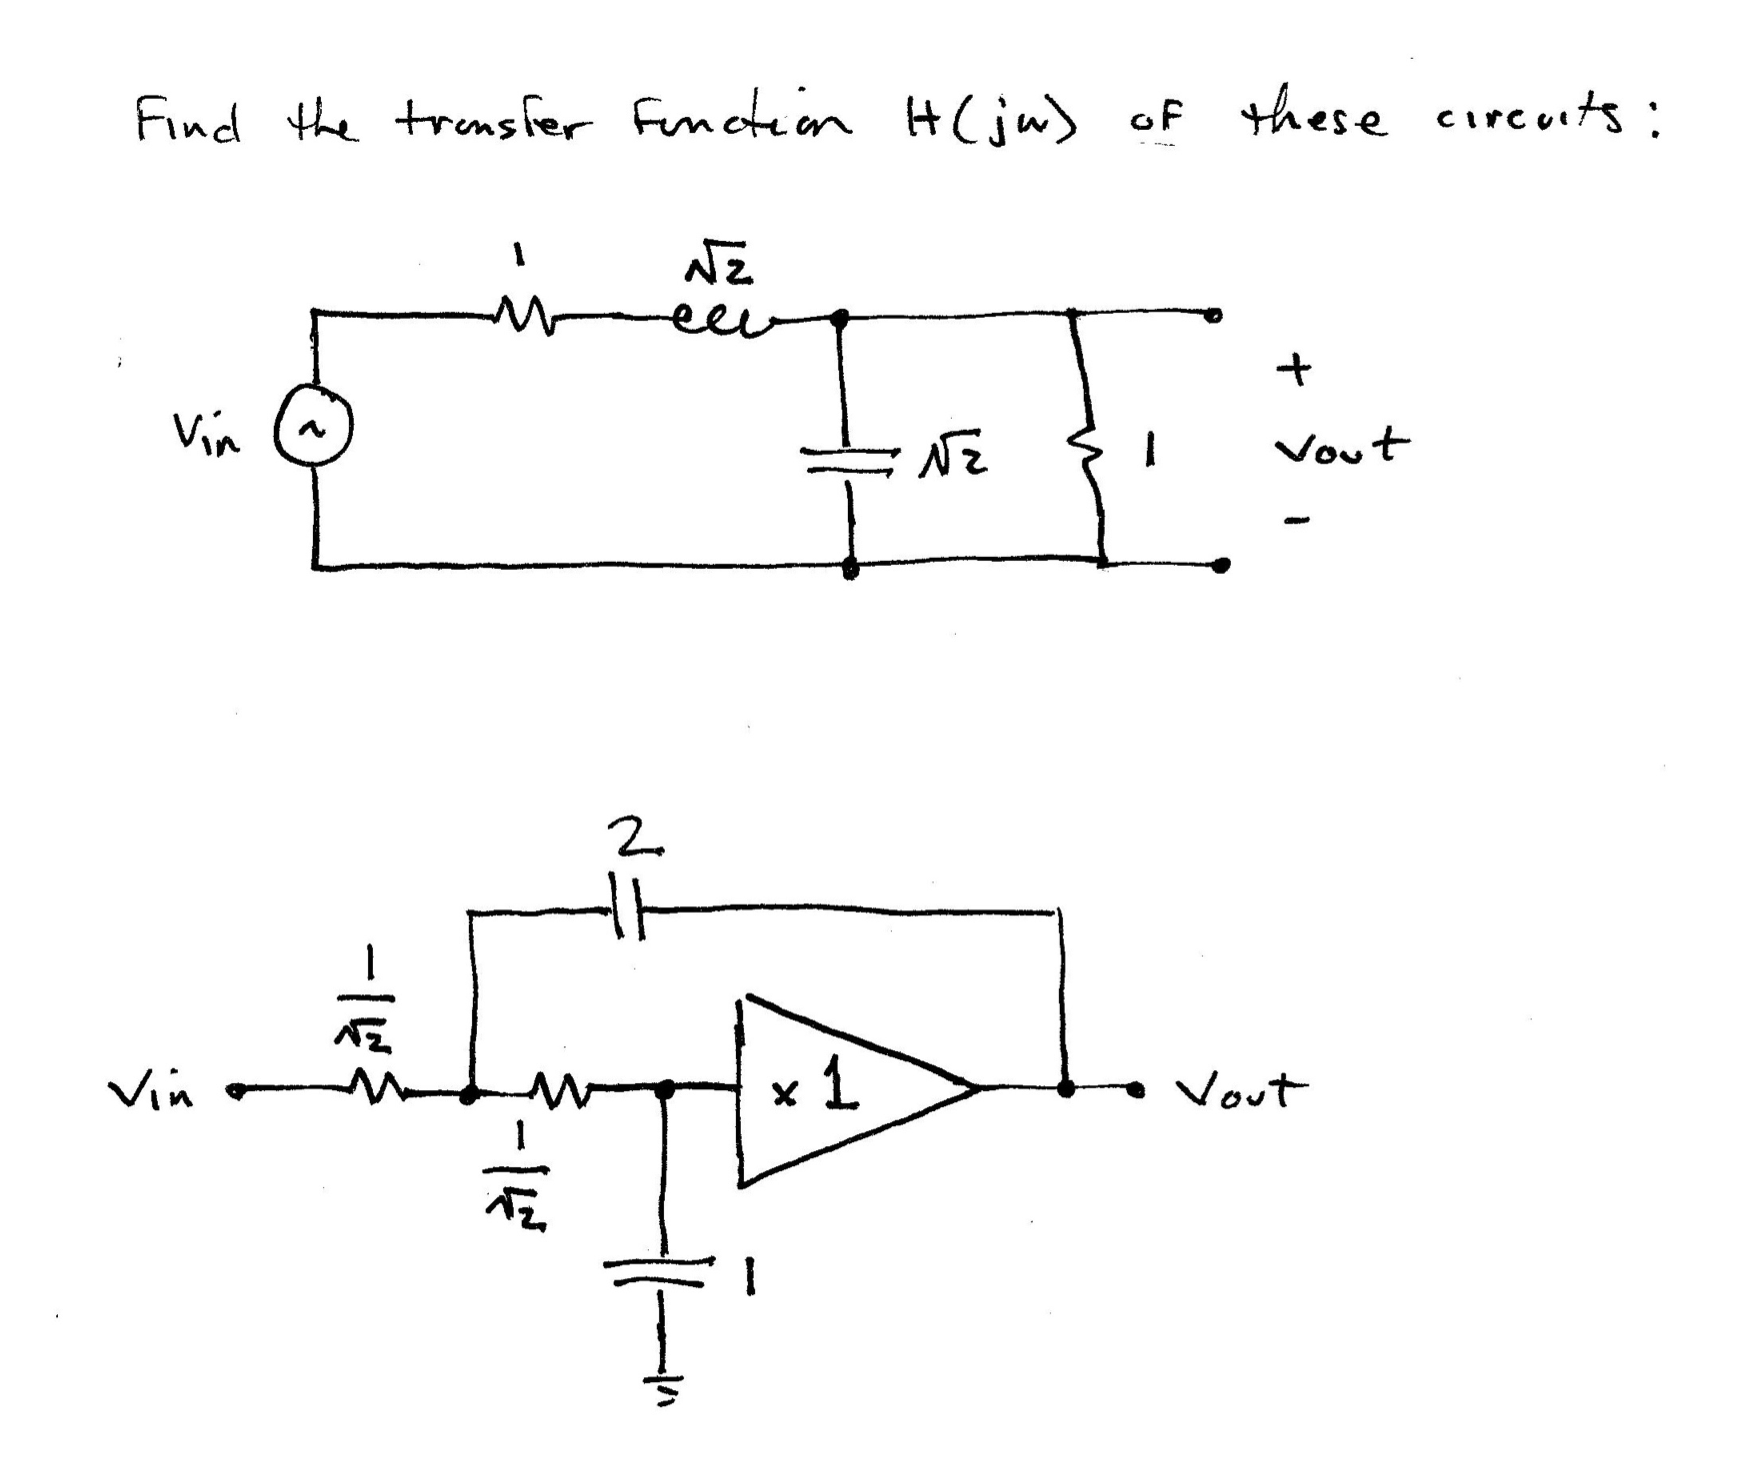 Find the transfer function H(jw) of these circuits